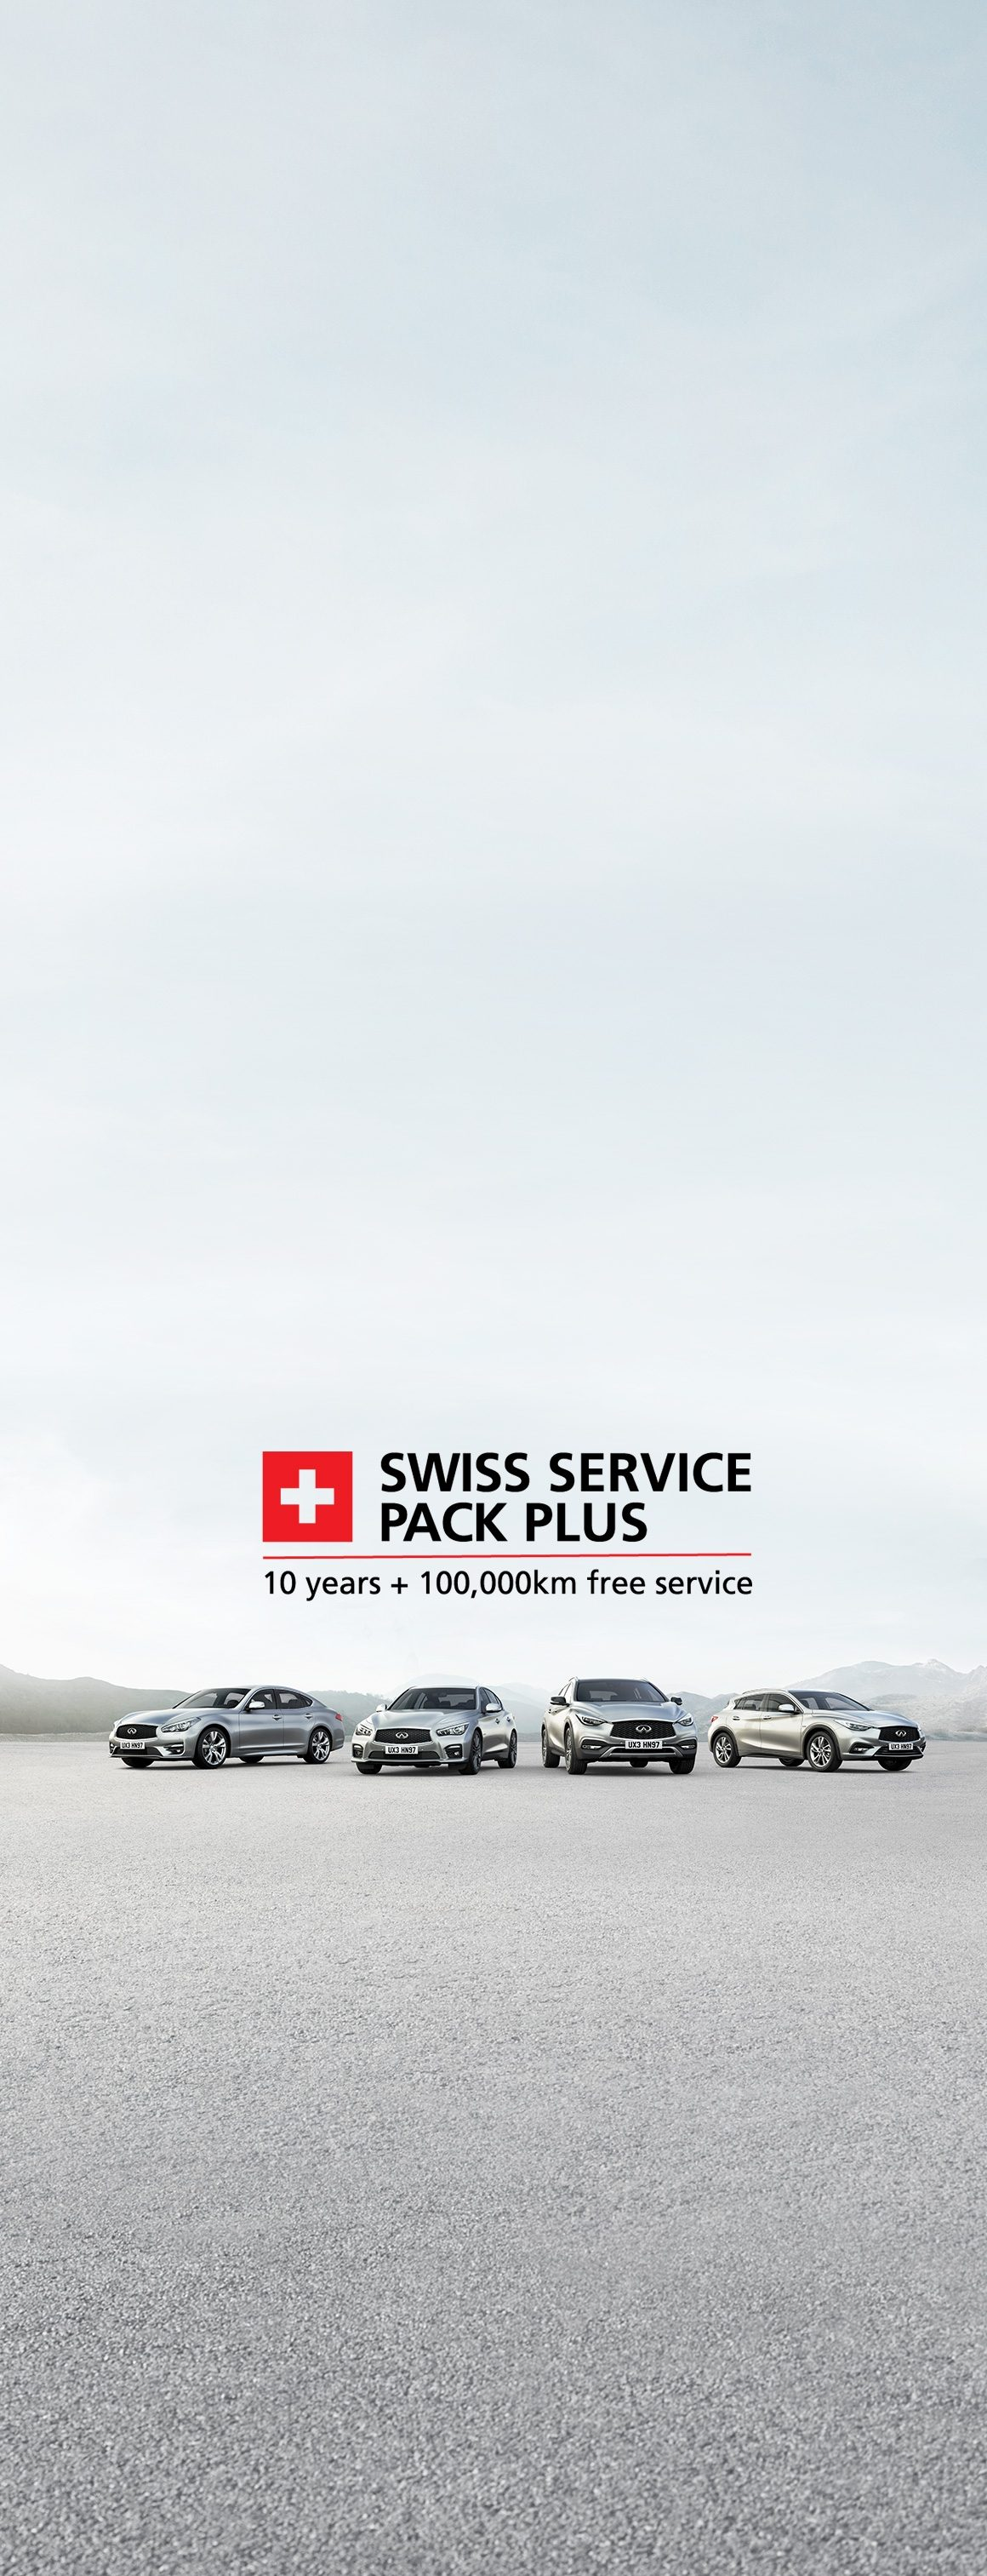 Swiss Service Pack Plus